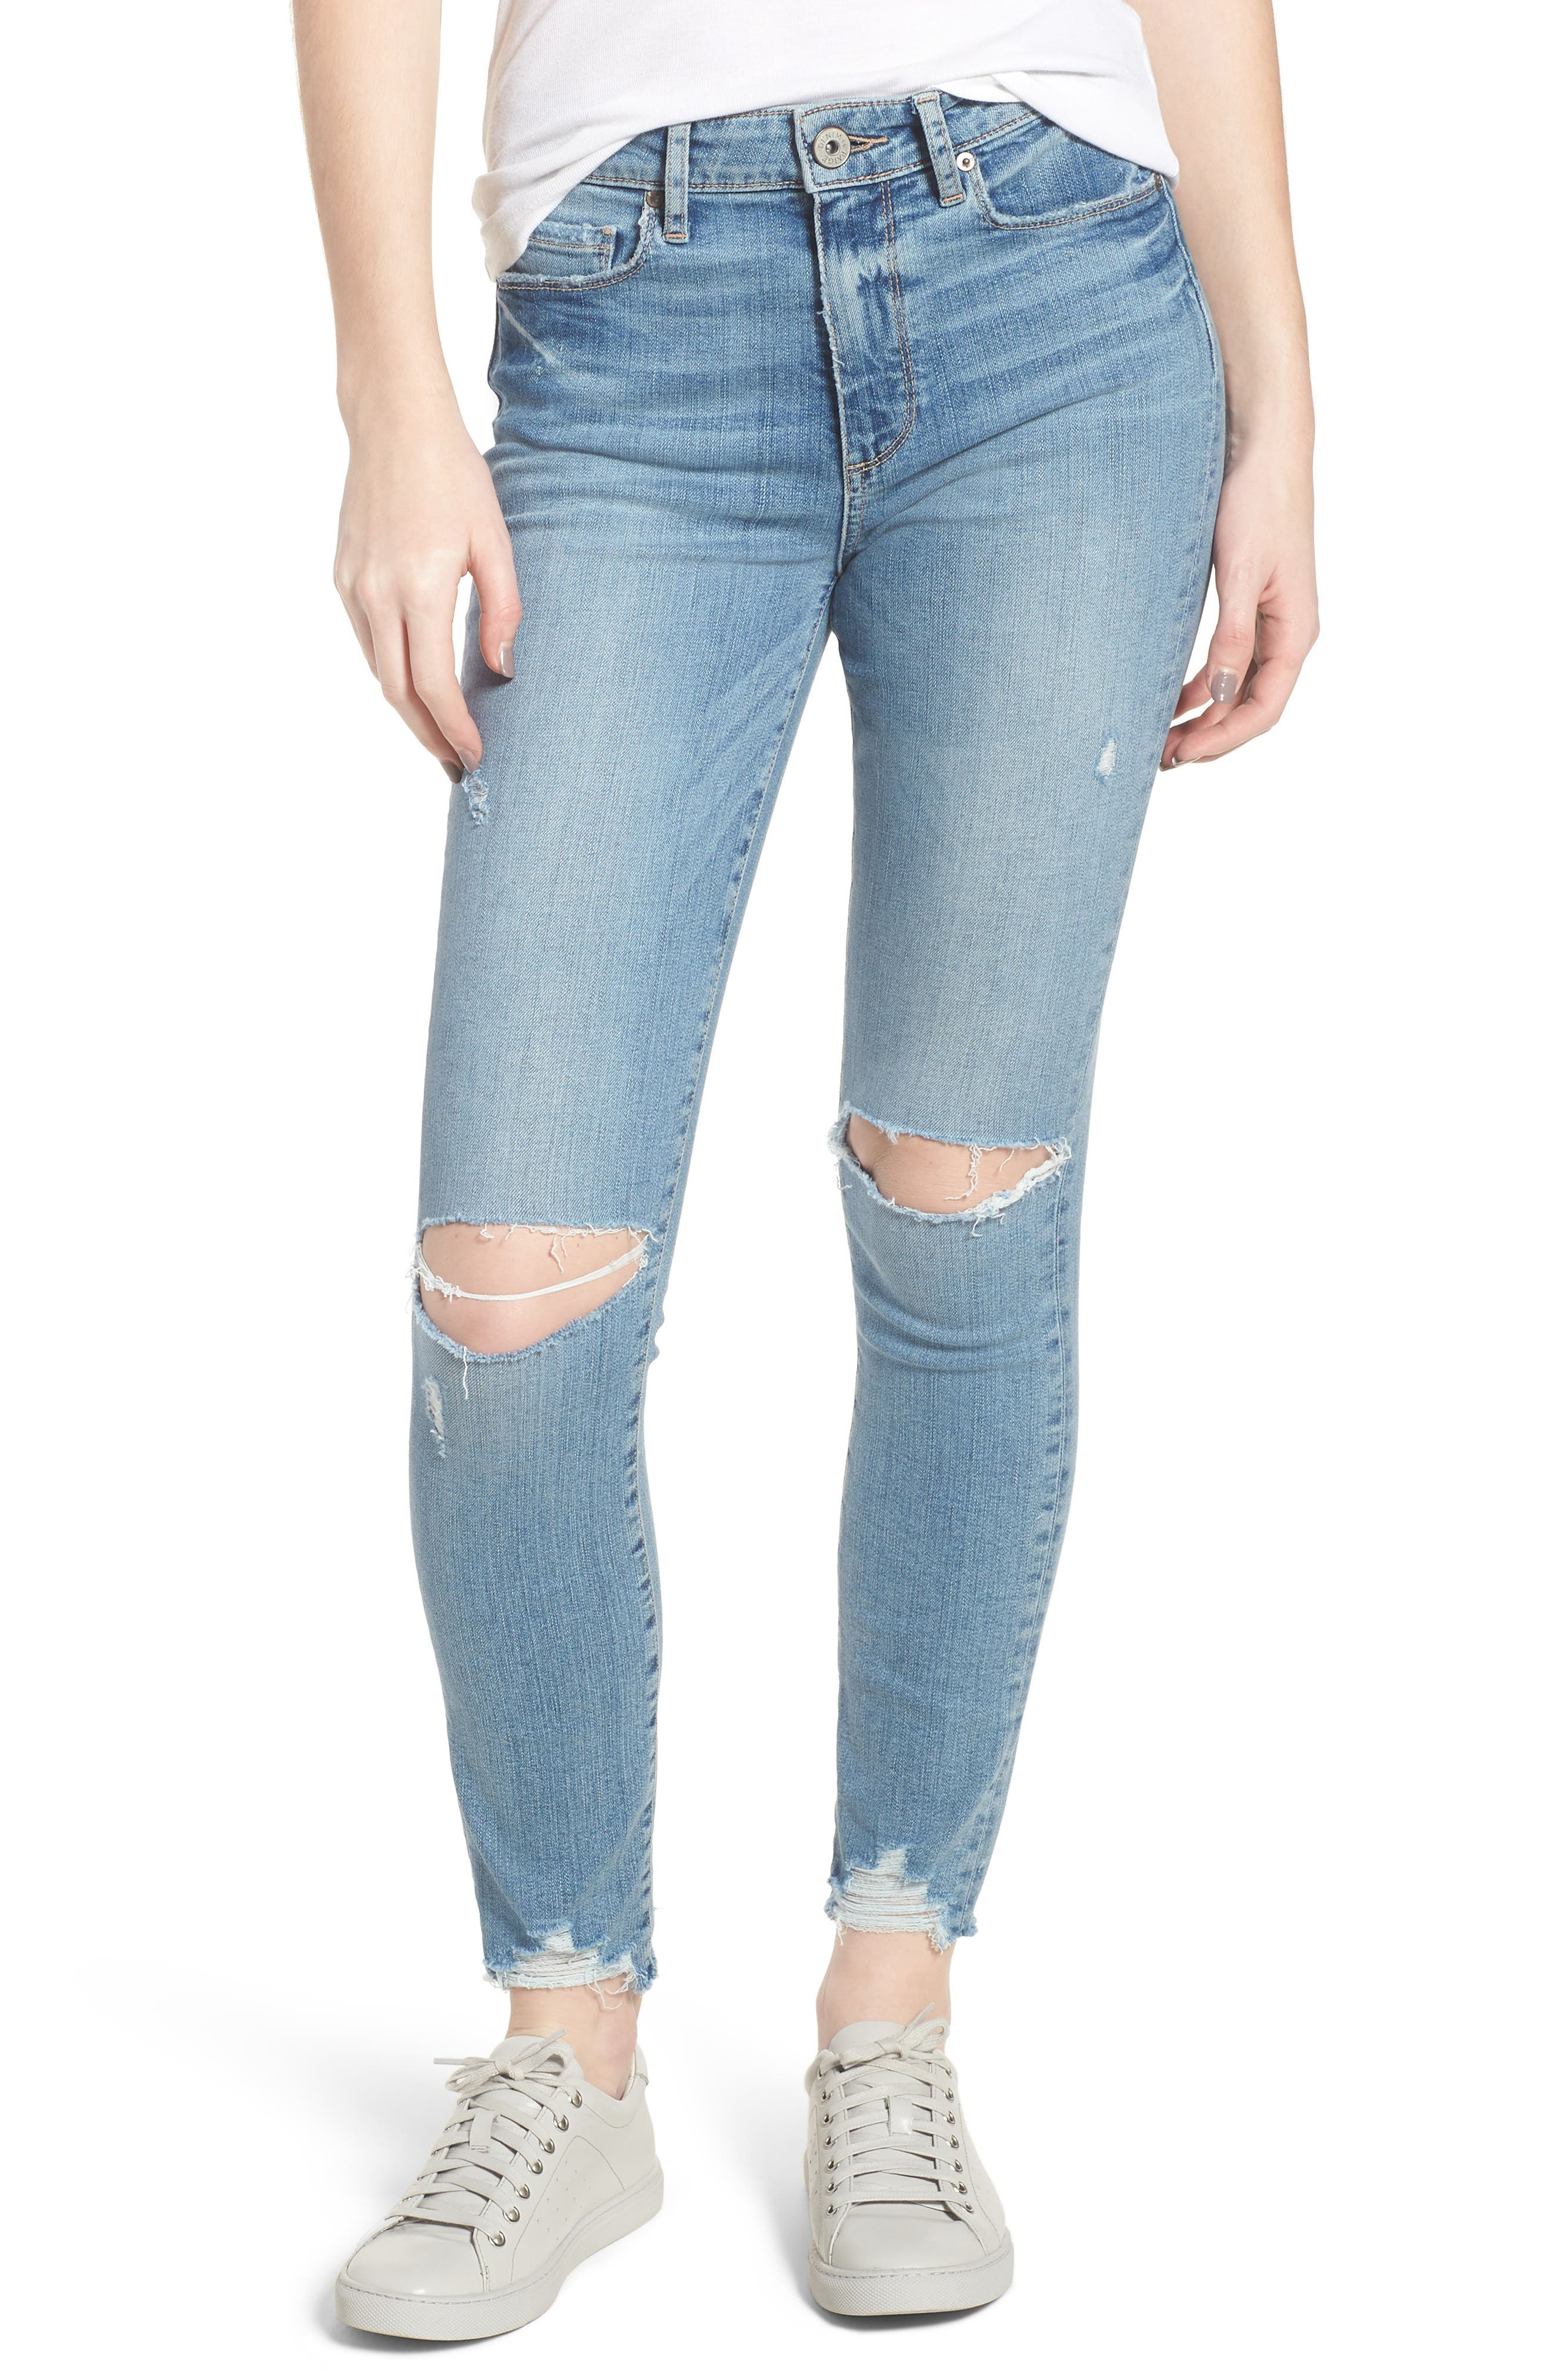 Hoxton High Waist Ankle Skinny Jeans,                             Main thumbnail 1, color,                             Janis Destructed